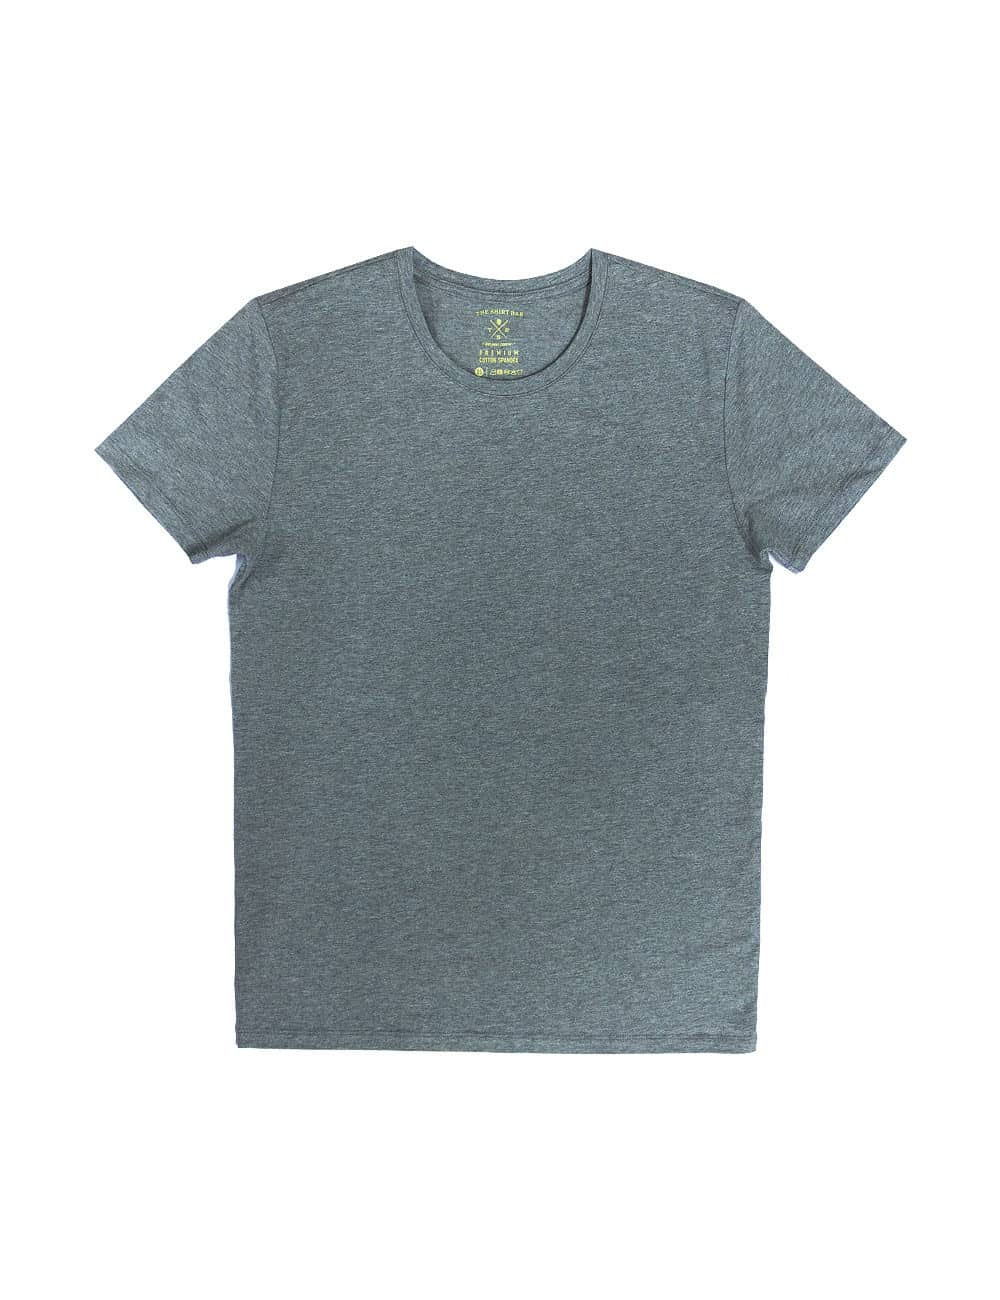 Slim Fit Grey Premium Cotton Stretch Short Sleeves Crew Neck T-Shirt TS1A4.1